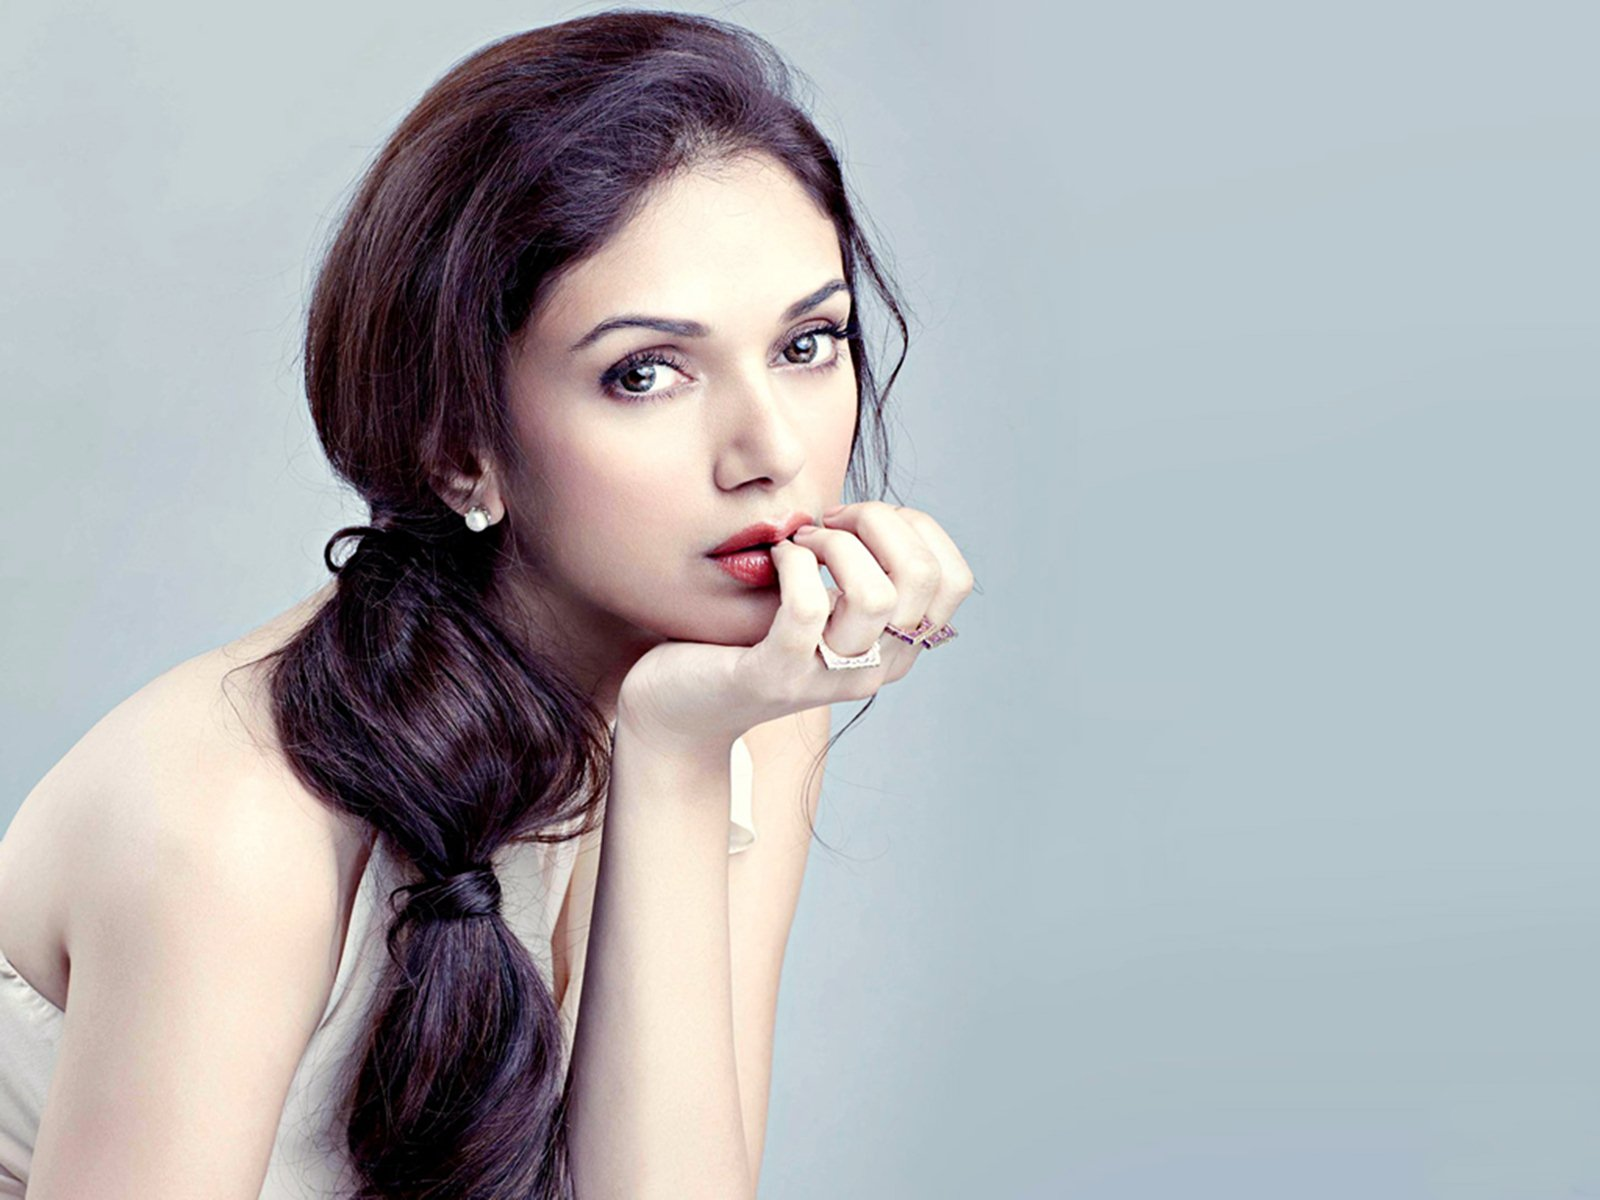 aditi-rao-hydari-computer-wallpaper-54065-55796-hd-wallpapers